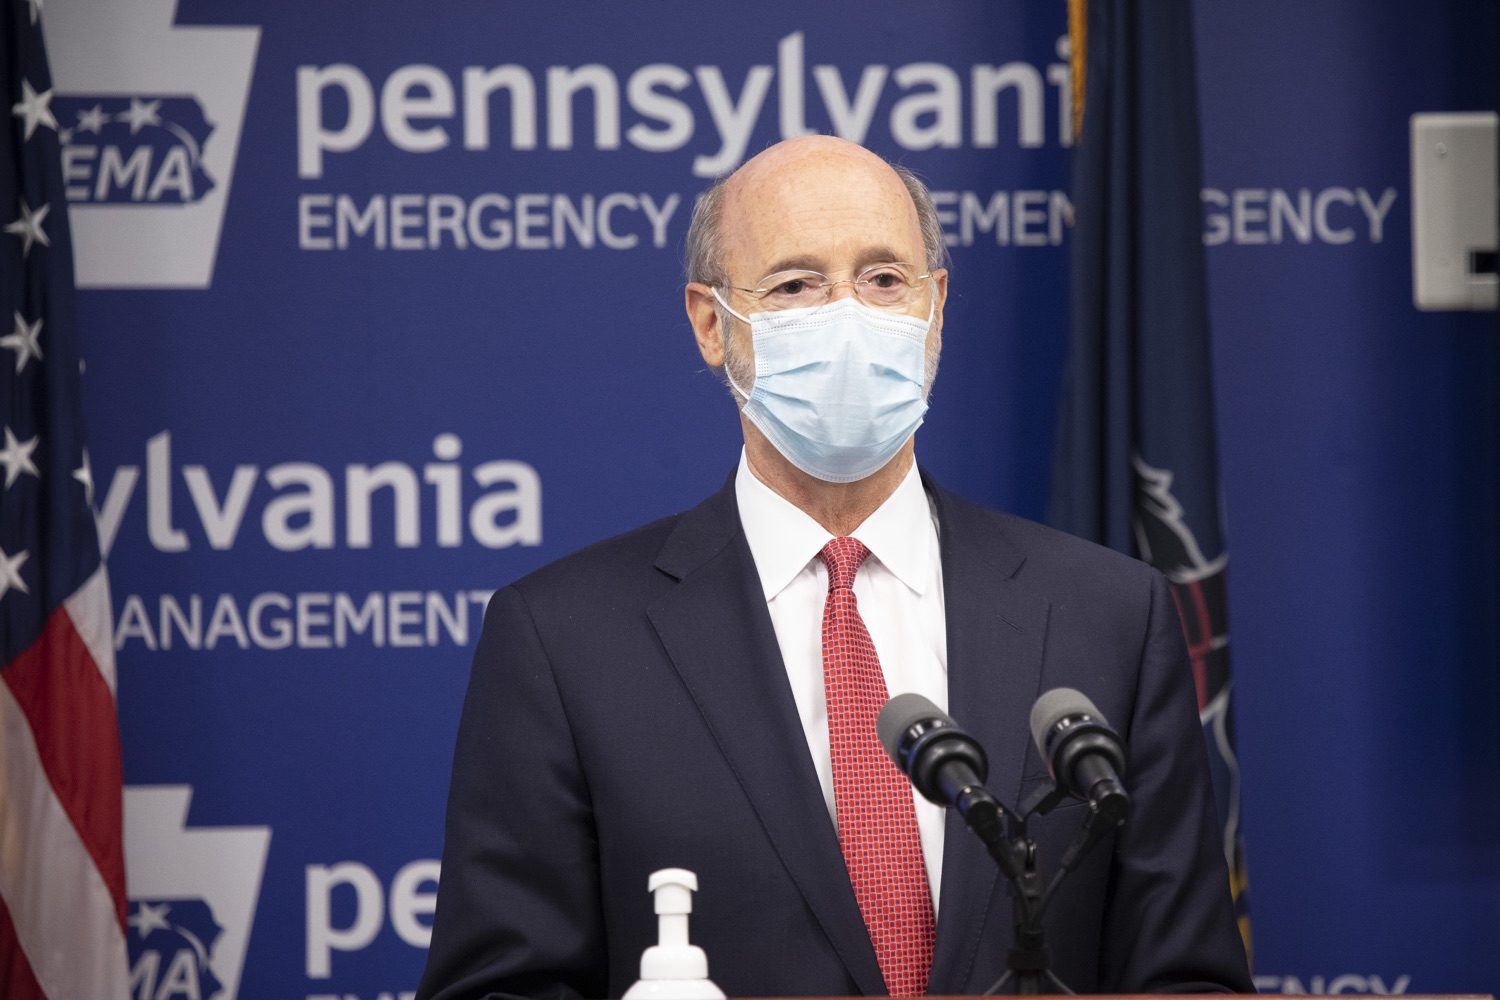 "<a href=""https://filesource.wostreaming.net/commonwealthofpa/photo/18405_gov_covidUpdate_dz_010.jpg"" target=""_blank"">⇣ Download Photo<br></a>Pennsylvania Governor Tom Wolf answers questions from the press.  With new modeling projecting 22,000 new COVID-19 cases per day in Pennsylvania in December, Governor Tom Wolf and Secretary of Health Dr. Rachel Levine today announced new targeted mitigation measures to help stop the spread during this critical time. These include a robust enforcement plan targeted at chronic violators along with an effort to ensure schools are safe and in compliance with COVID safety plans. The administration is also encouraging Pennsylvanians to limit unnecessary travel and stay at home.  Harrisburg, Pa. November 23, 2020"